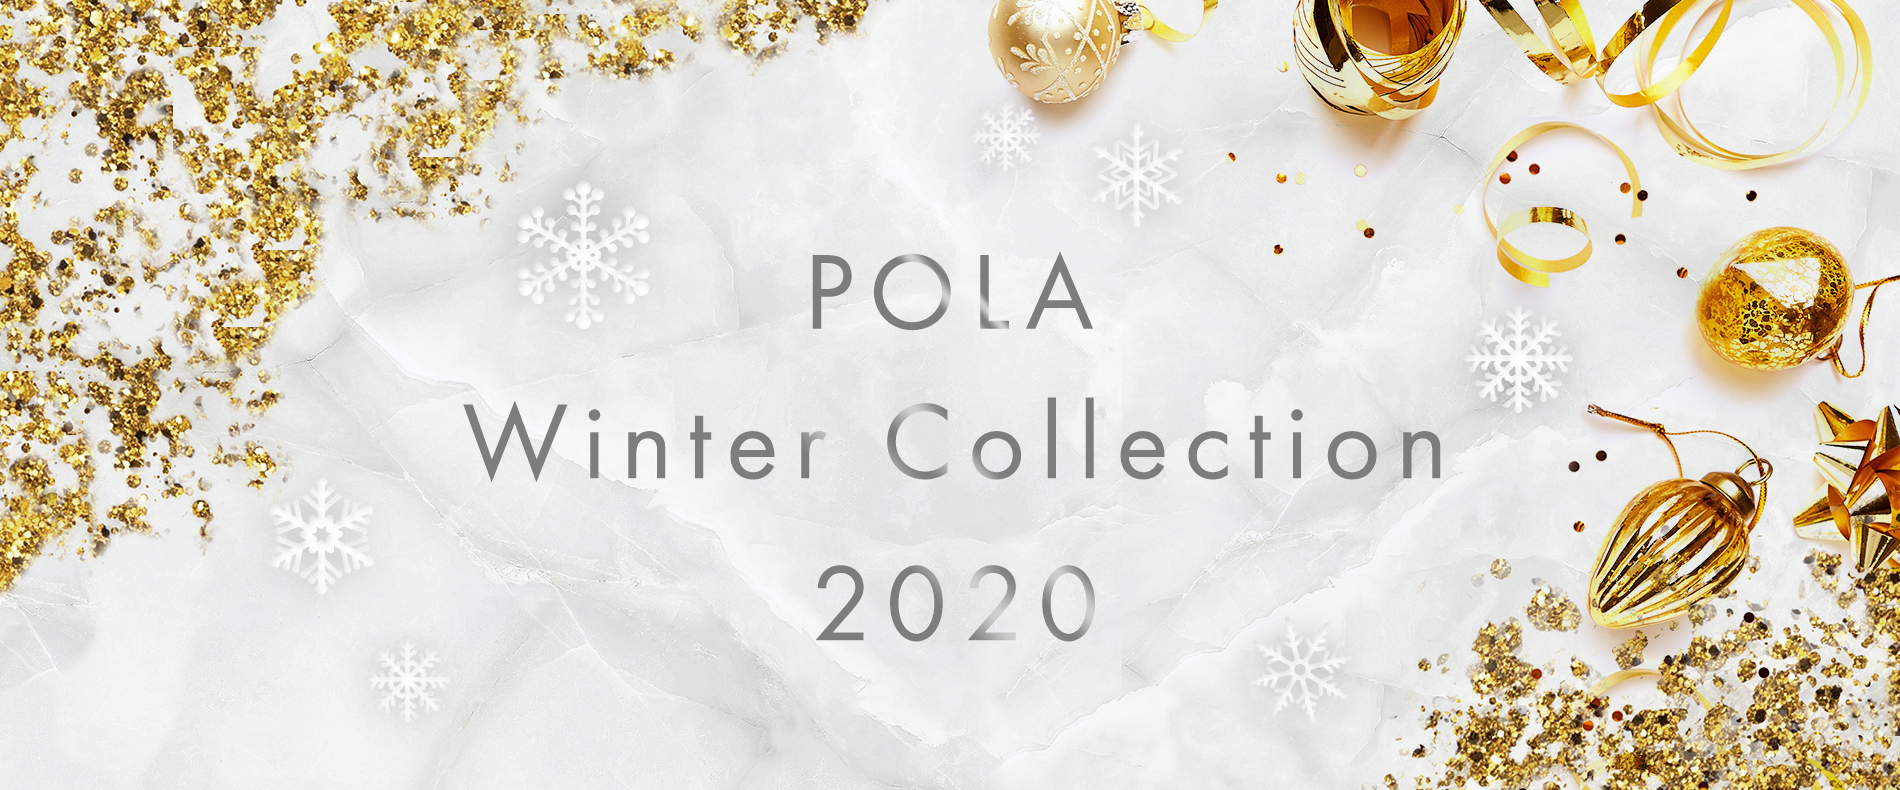 POLA Winter Collection 2020